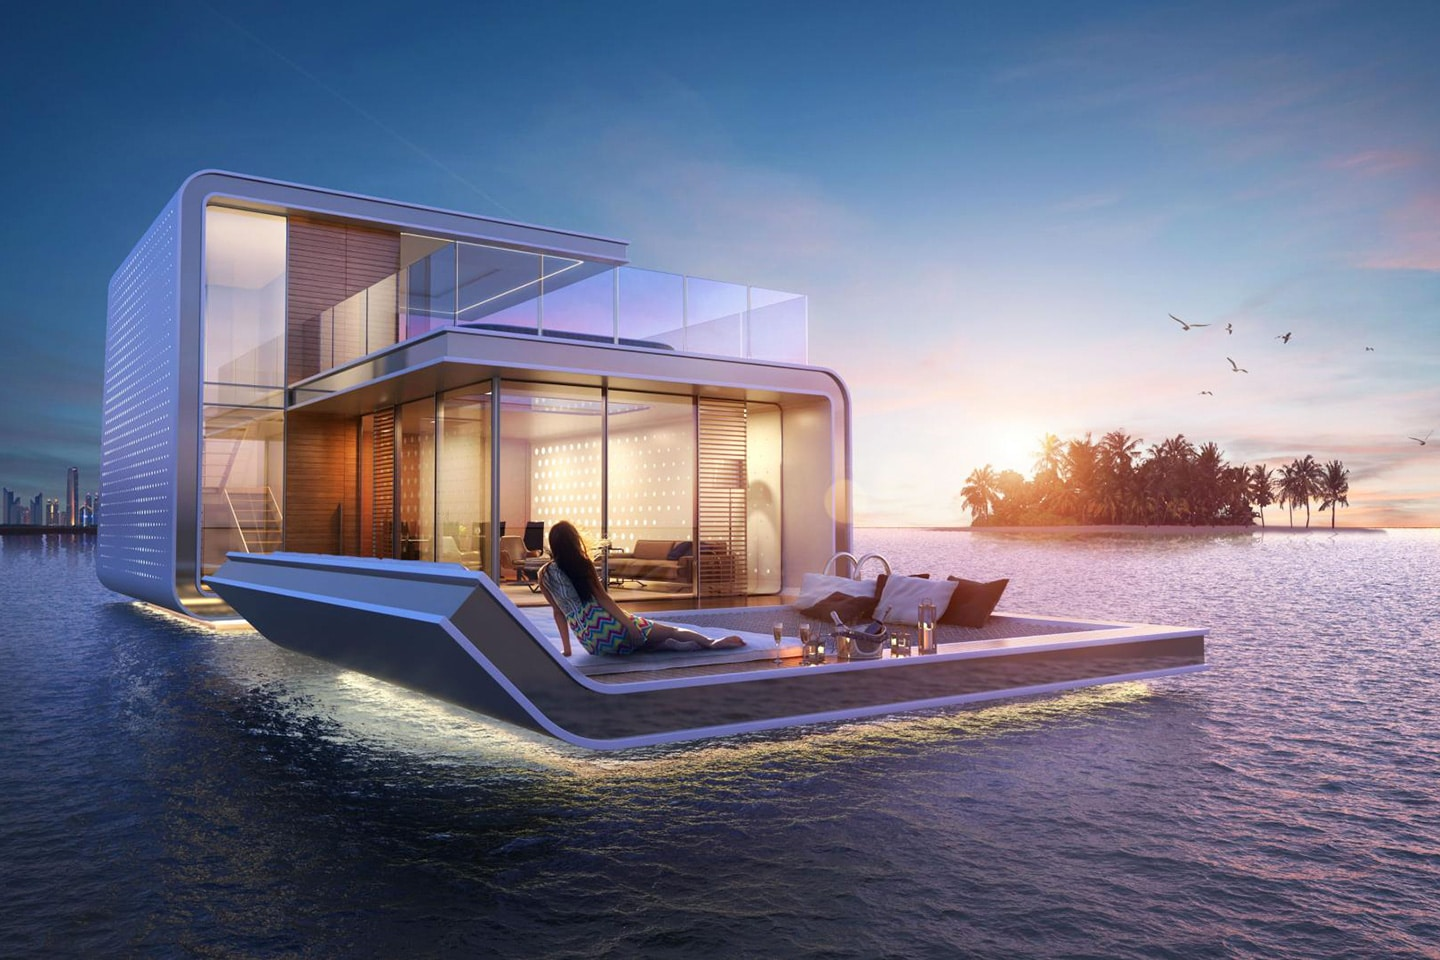 Floating house in Dubai